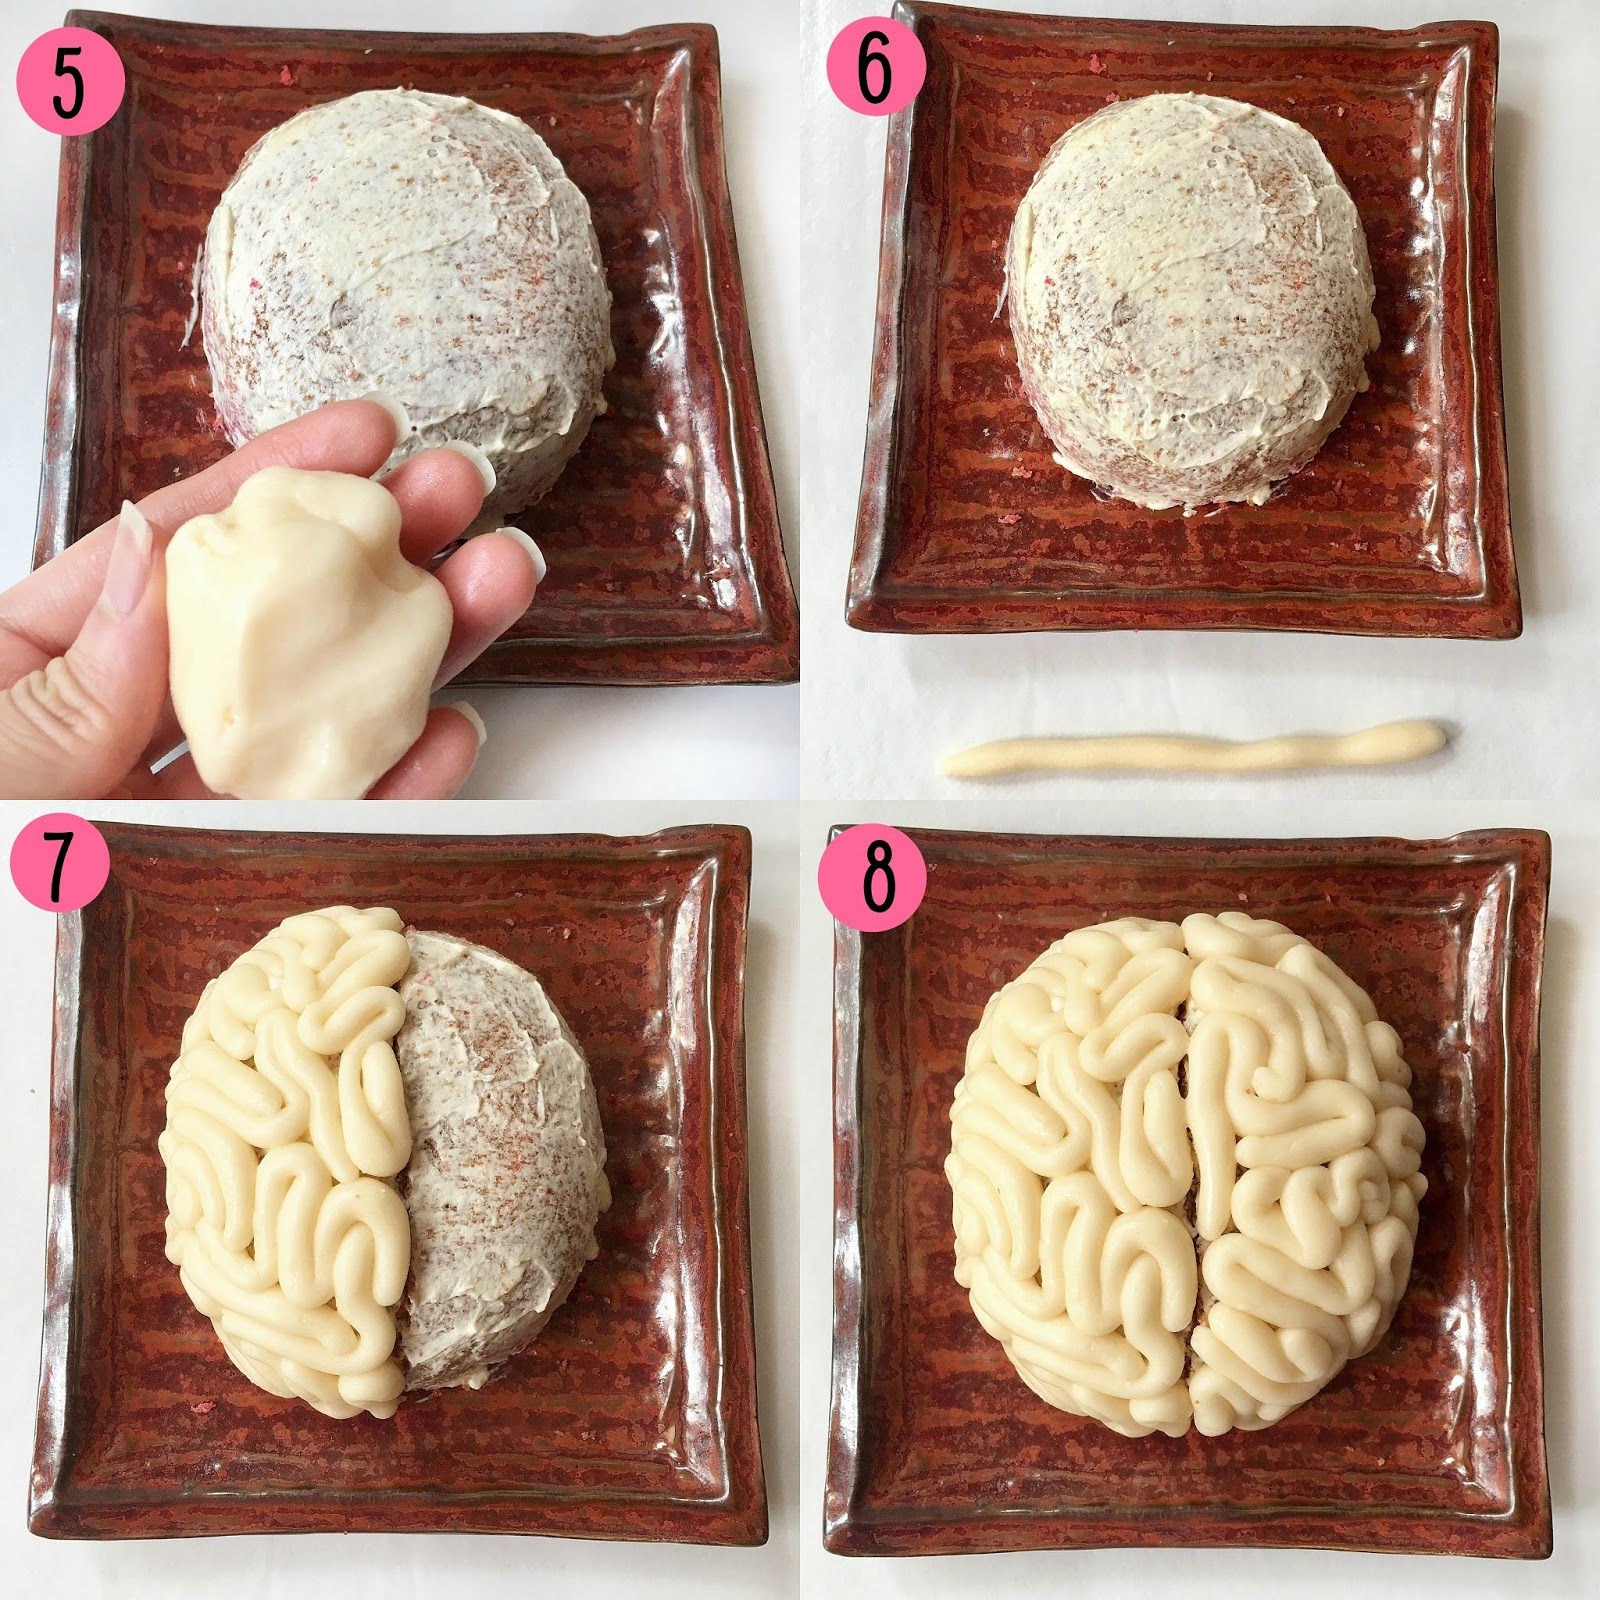 Steps on how to make fondant brain cake for halloween